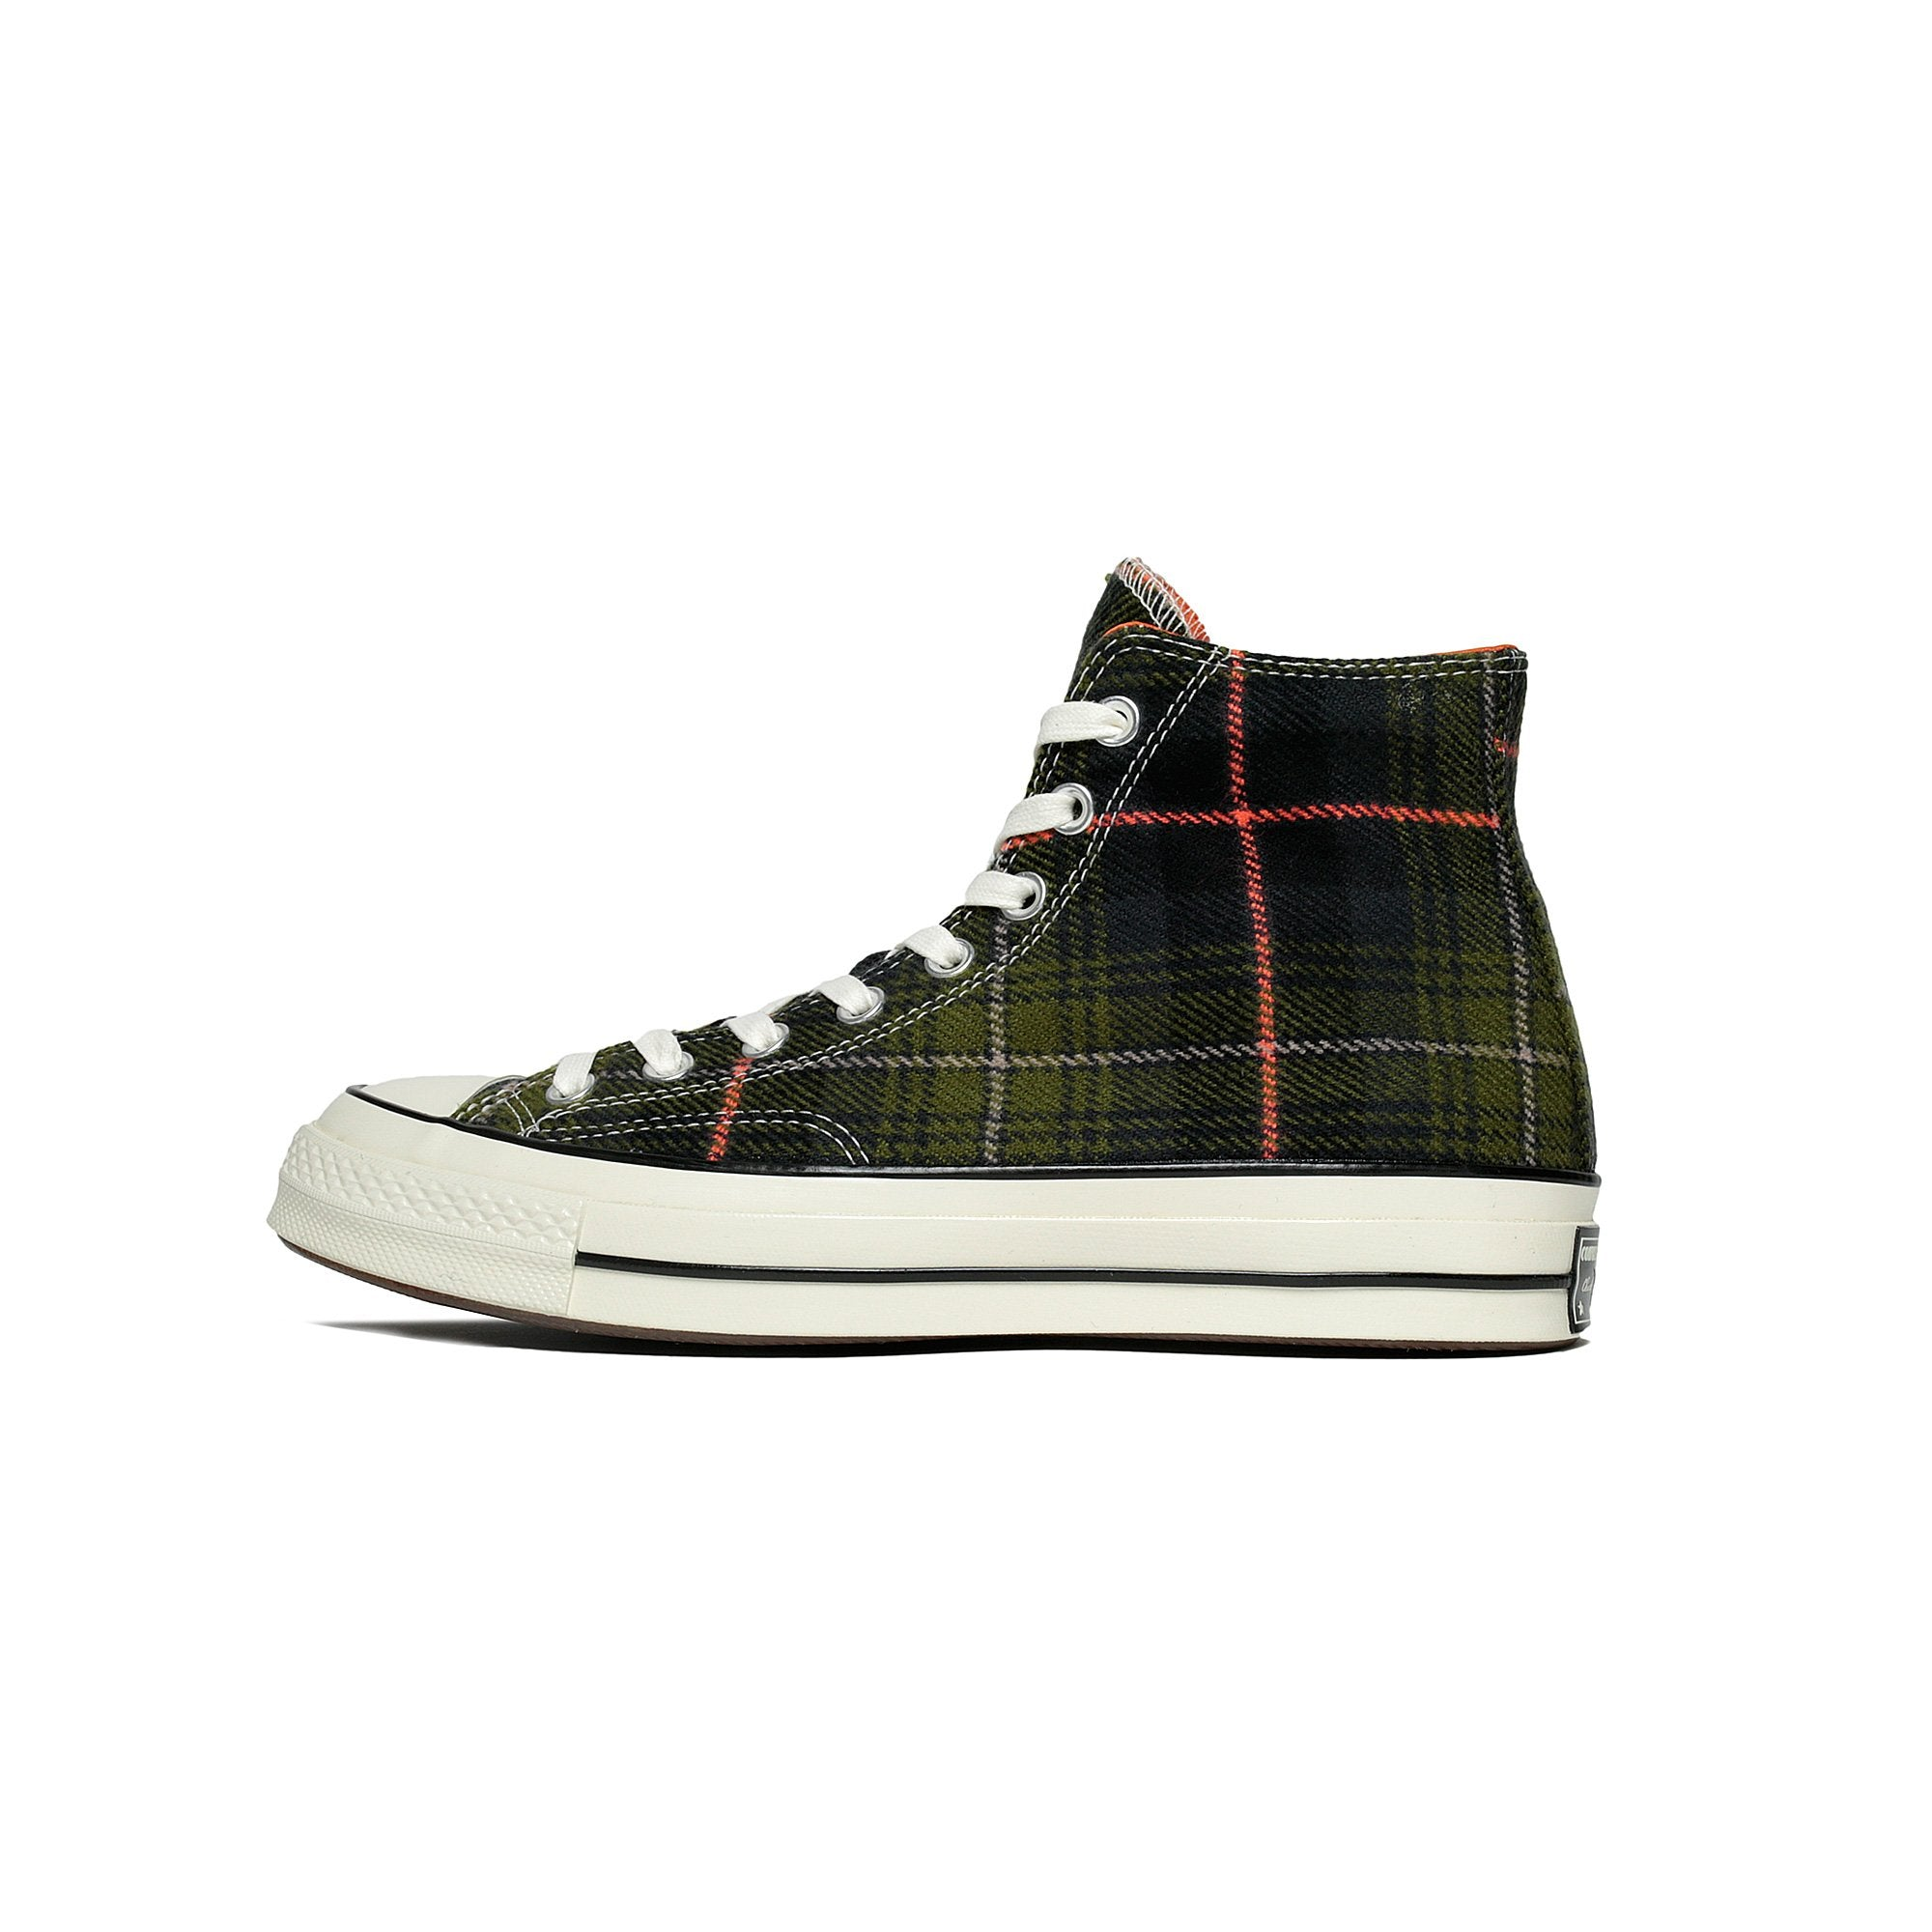 a2ca8b302ecc Details about Converse Chuck Taylor All Star 70 High Top Elevated Plaid  Olive Orange 162404C